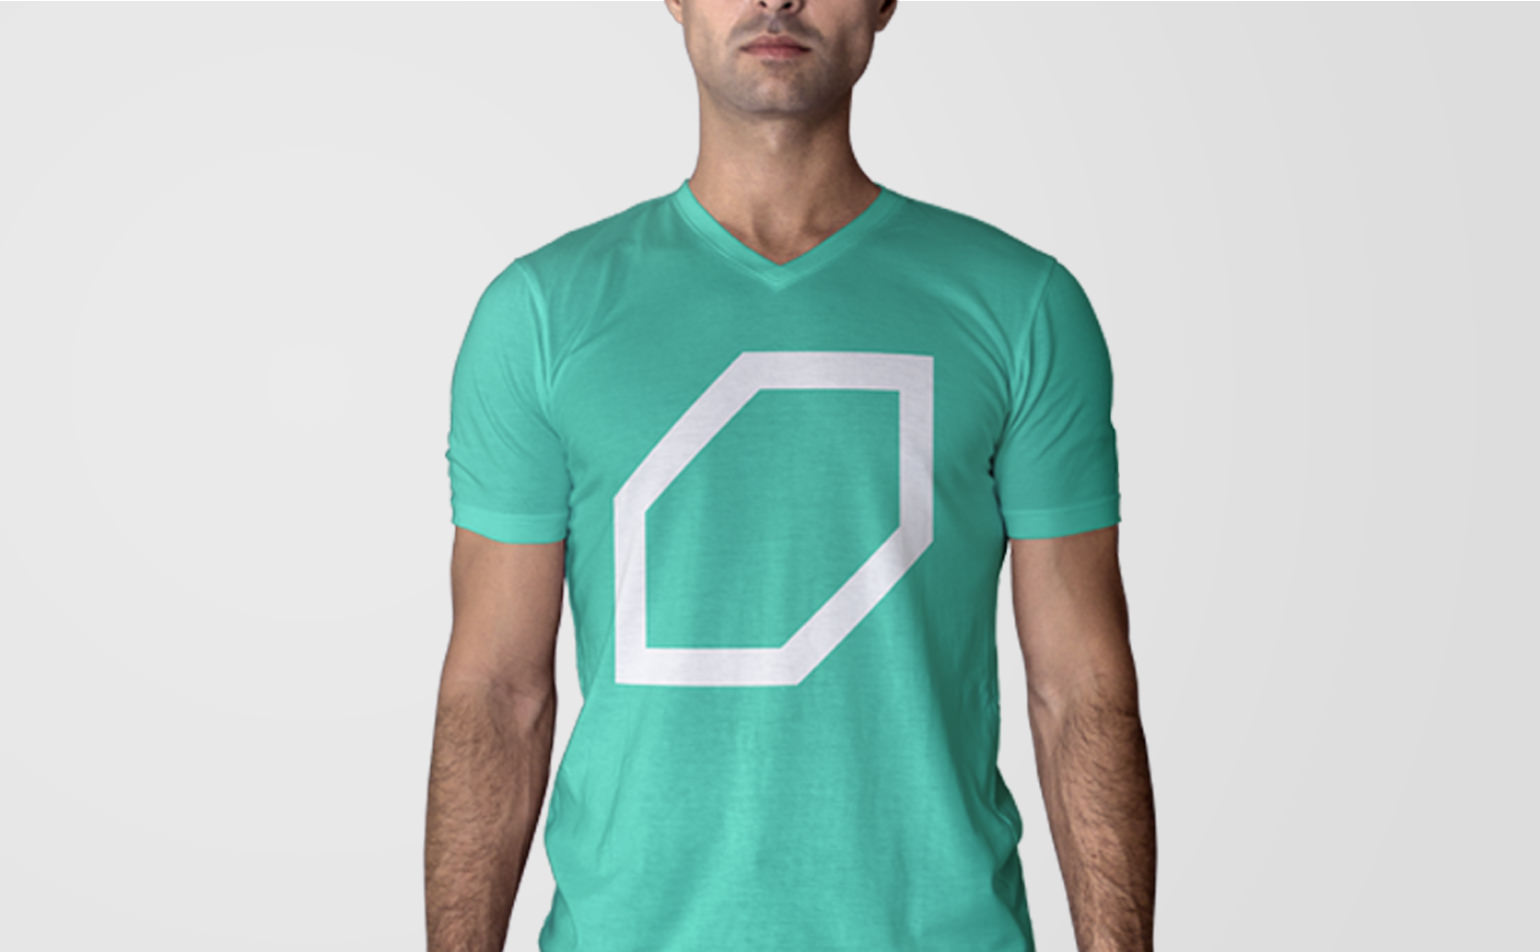 Ignyte-Branding-Agency-Growth-Marketing-Conference-Assets-V4-T-Shirt